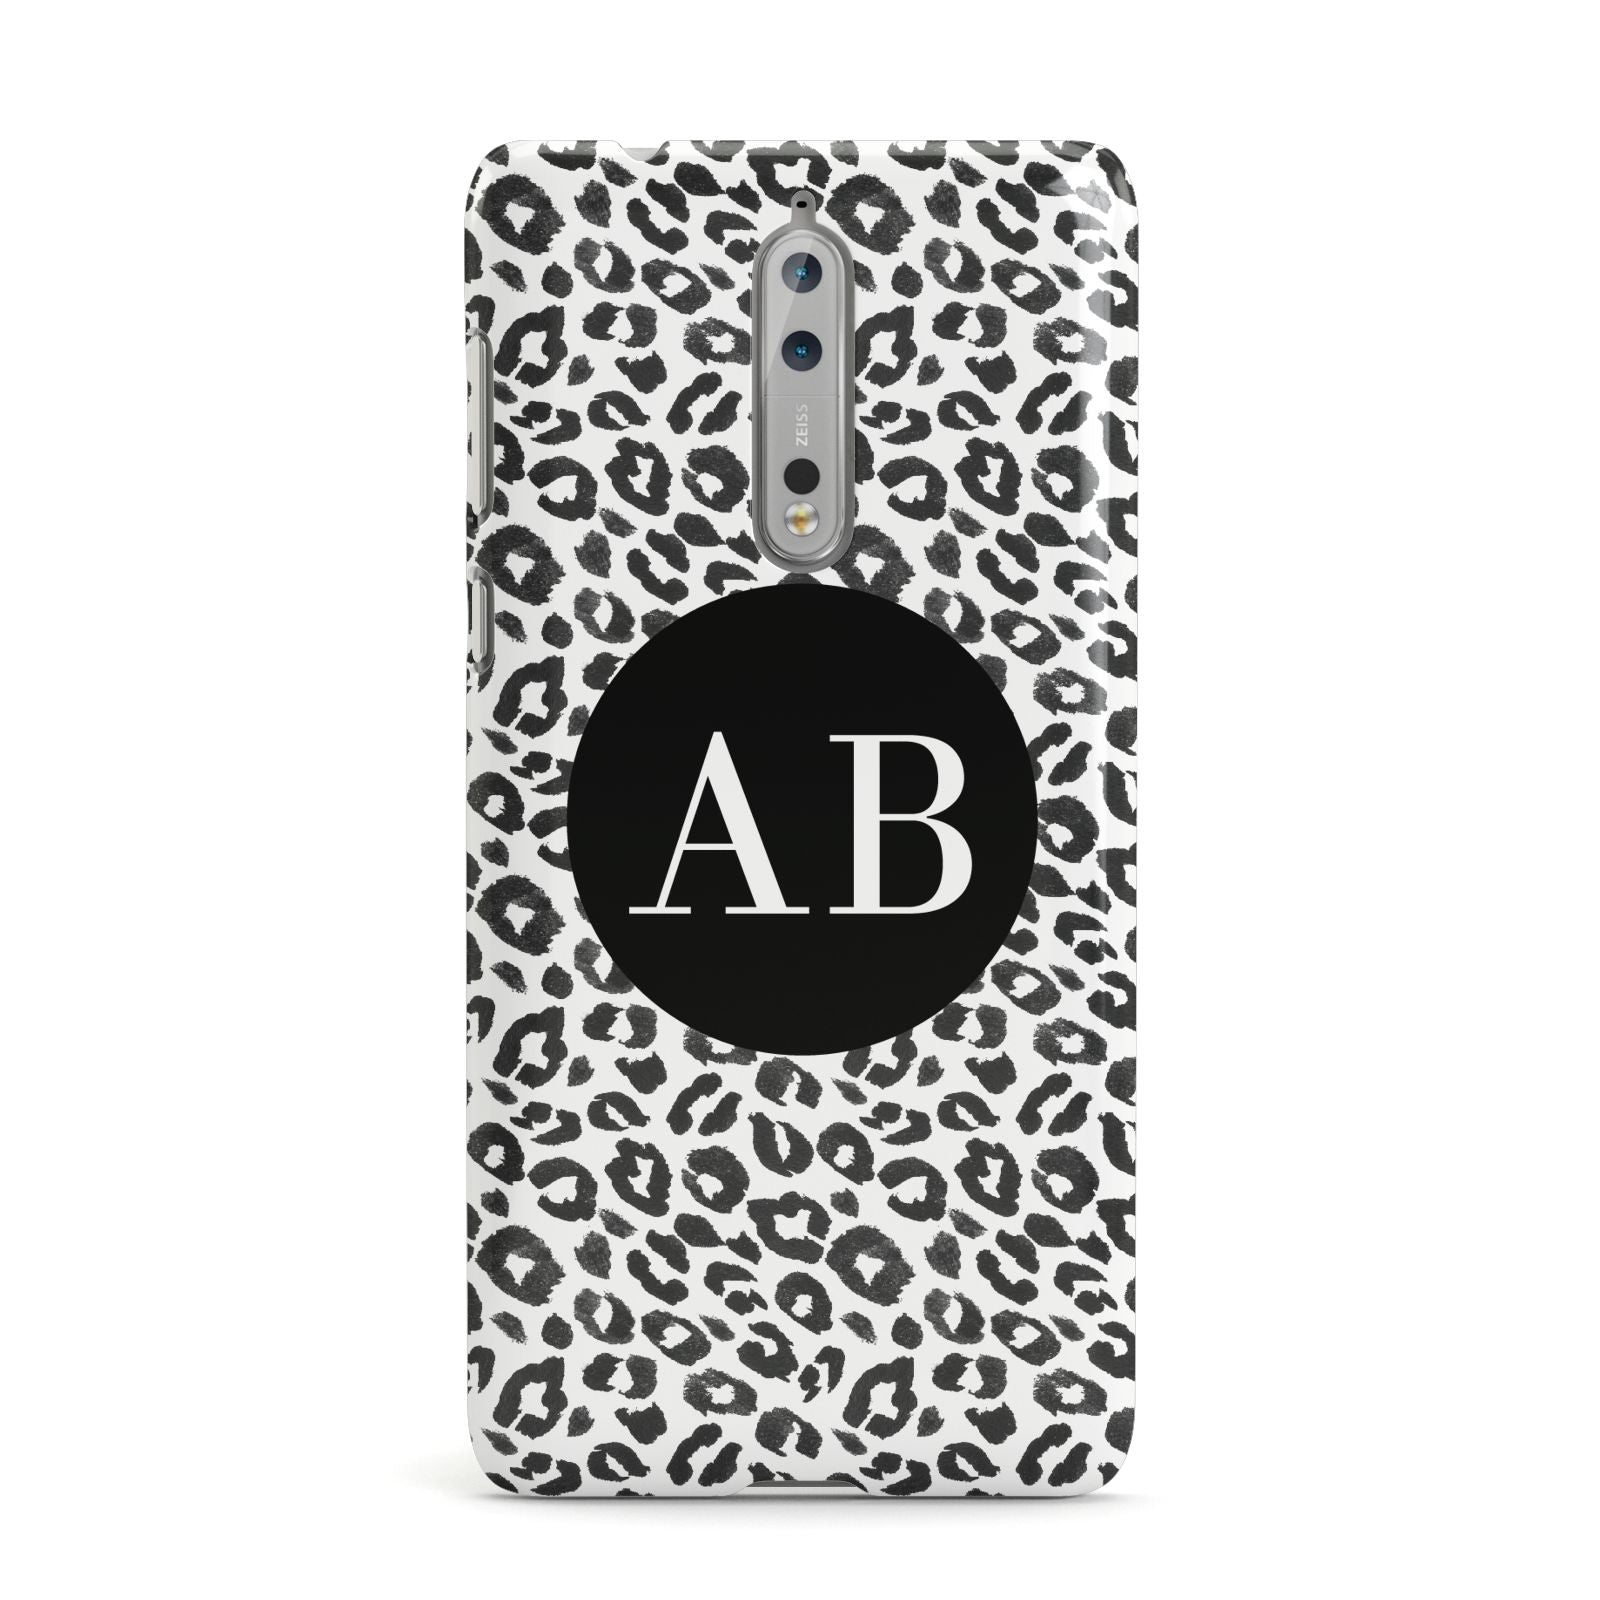 Leopard Print Black and White Nokia Case